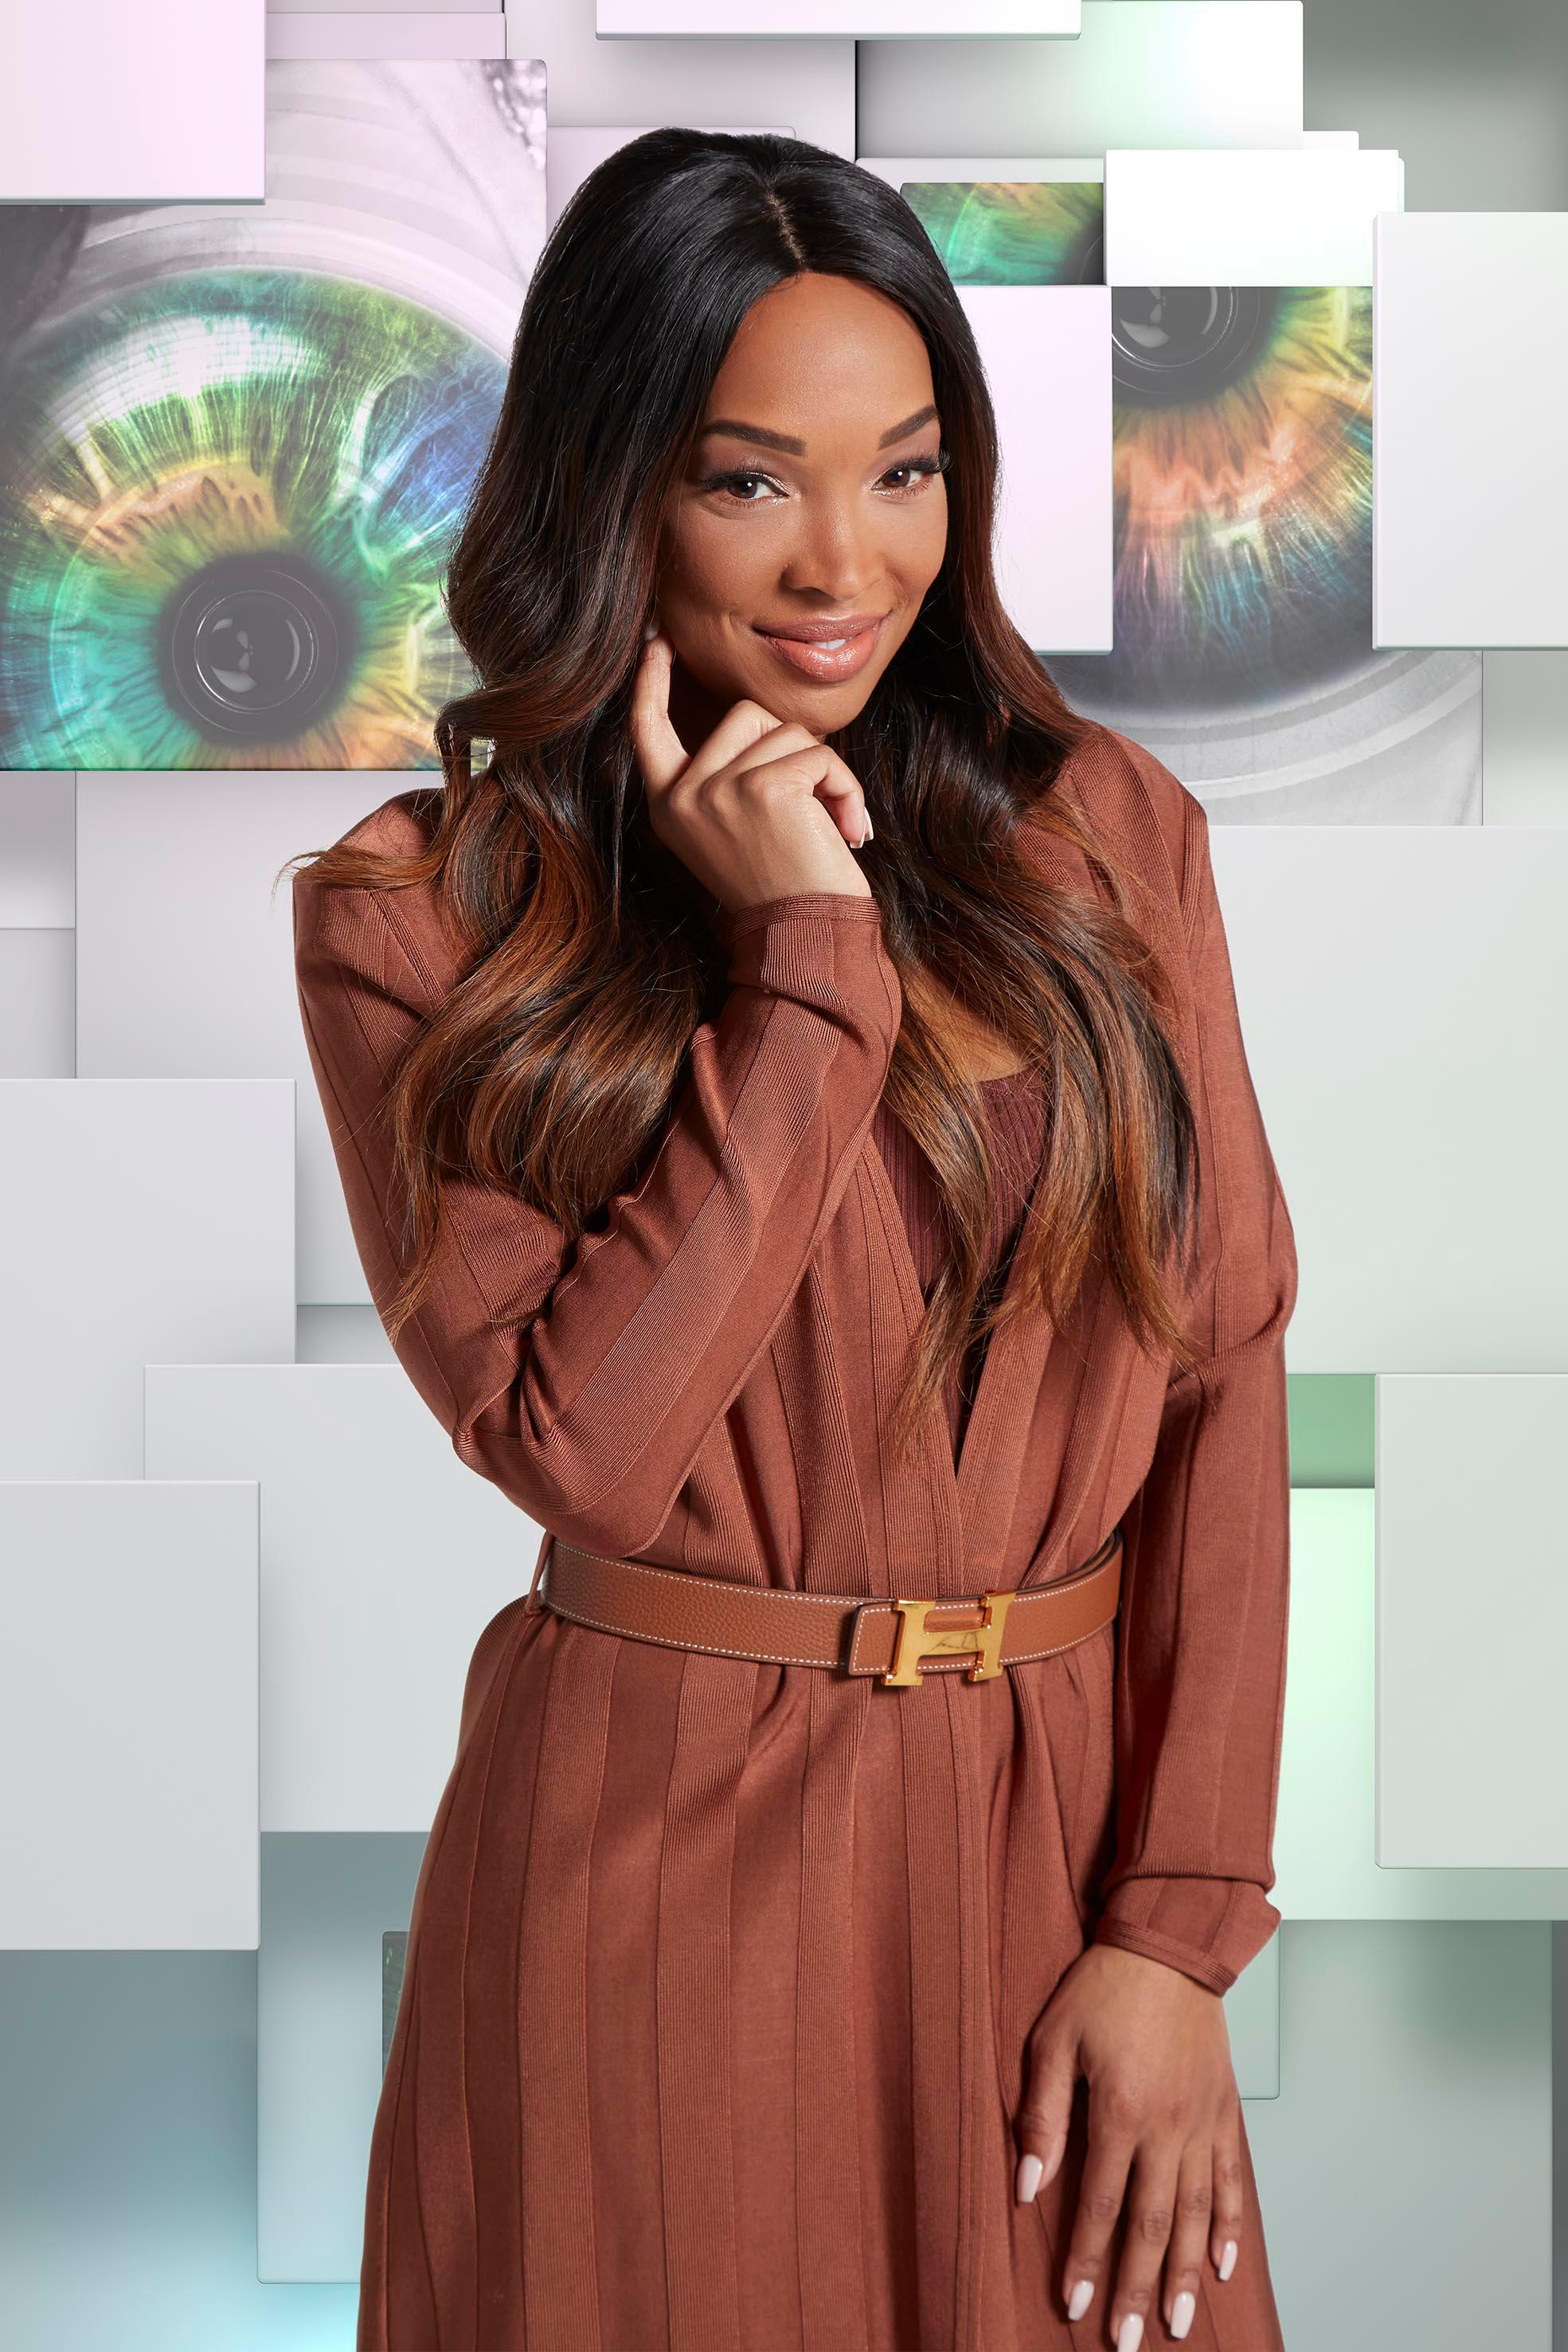 Who is Malika Haqq? Evicted Celebrity Big Brother 2018 contestant and Khloe Kardashian's best friend